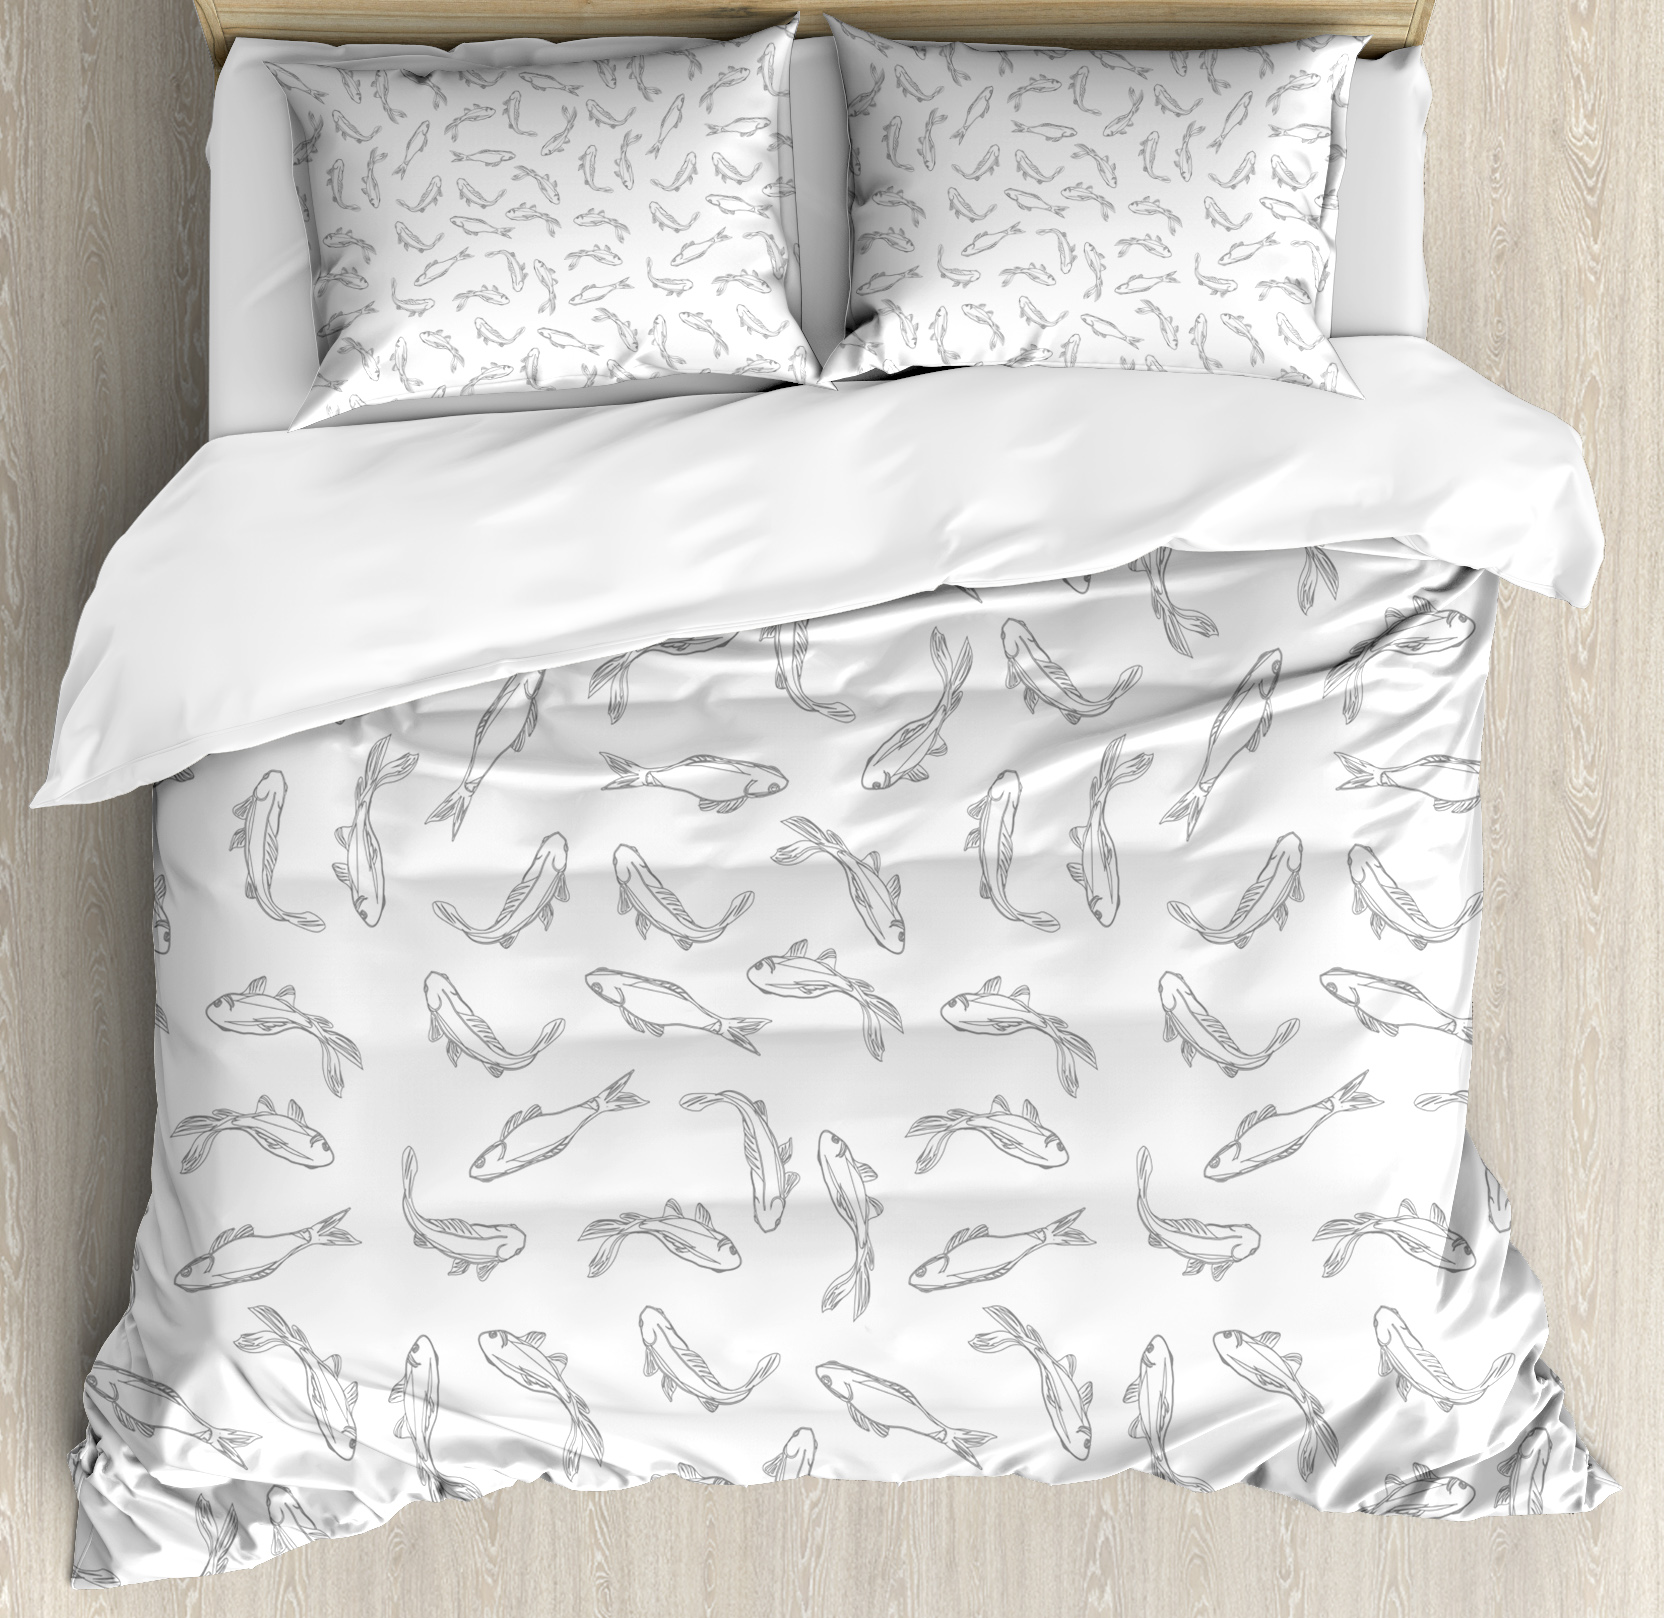 Grey and White King Size Duvet Cover Set, Fish Pattern ...